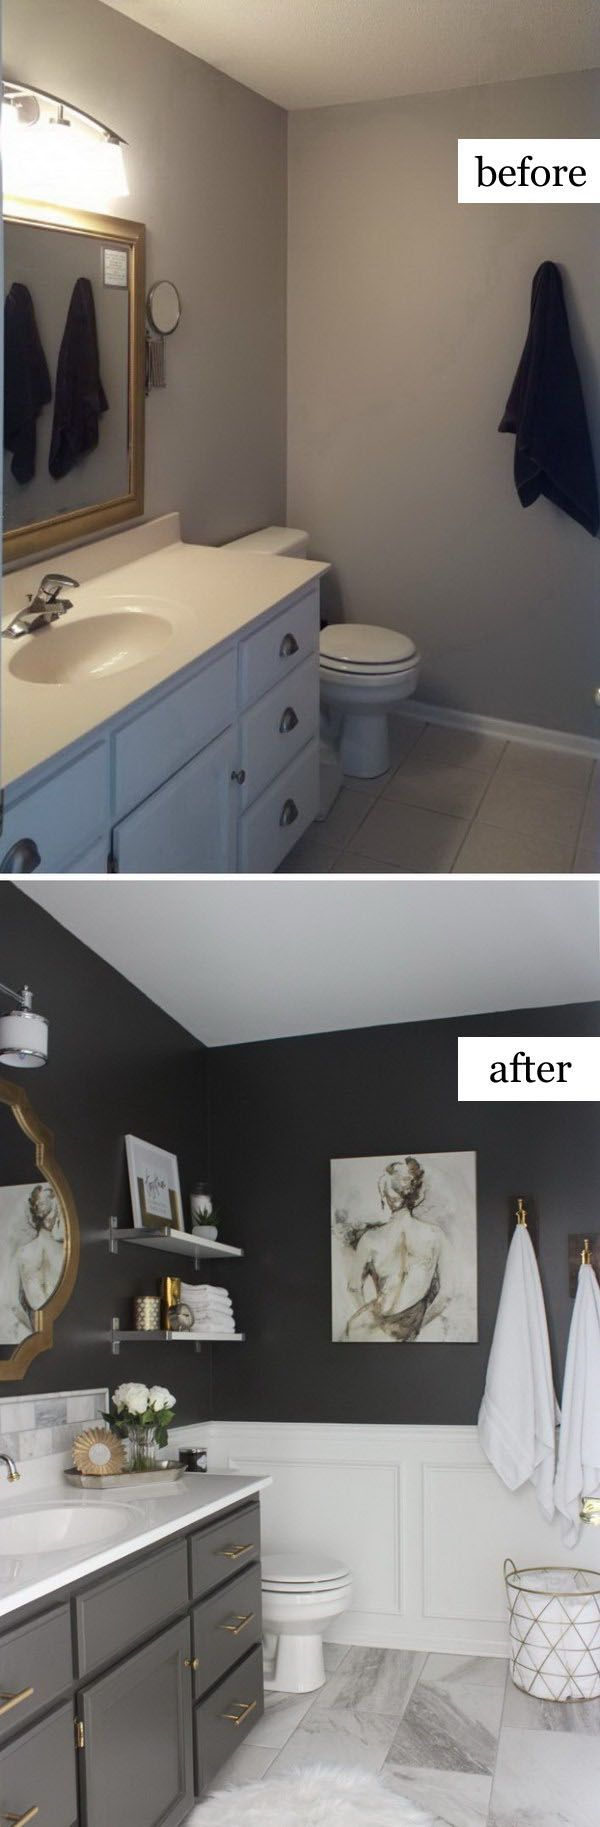 Bathroom Makeovers And Remodeling Ideas best 25+ bathroom remodeling ideas on pinterest | small bathroom